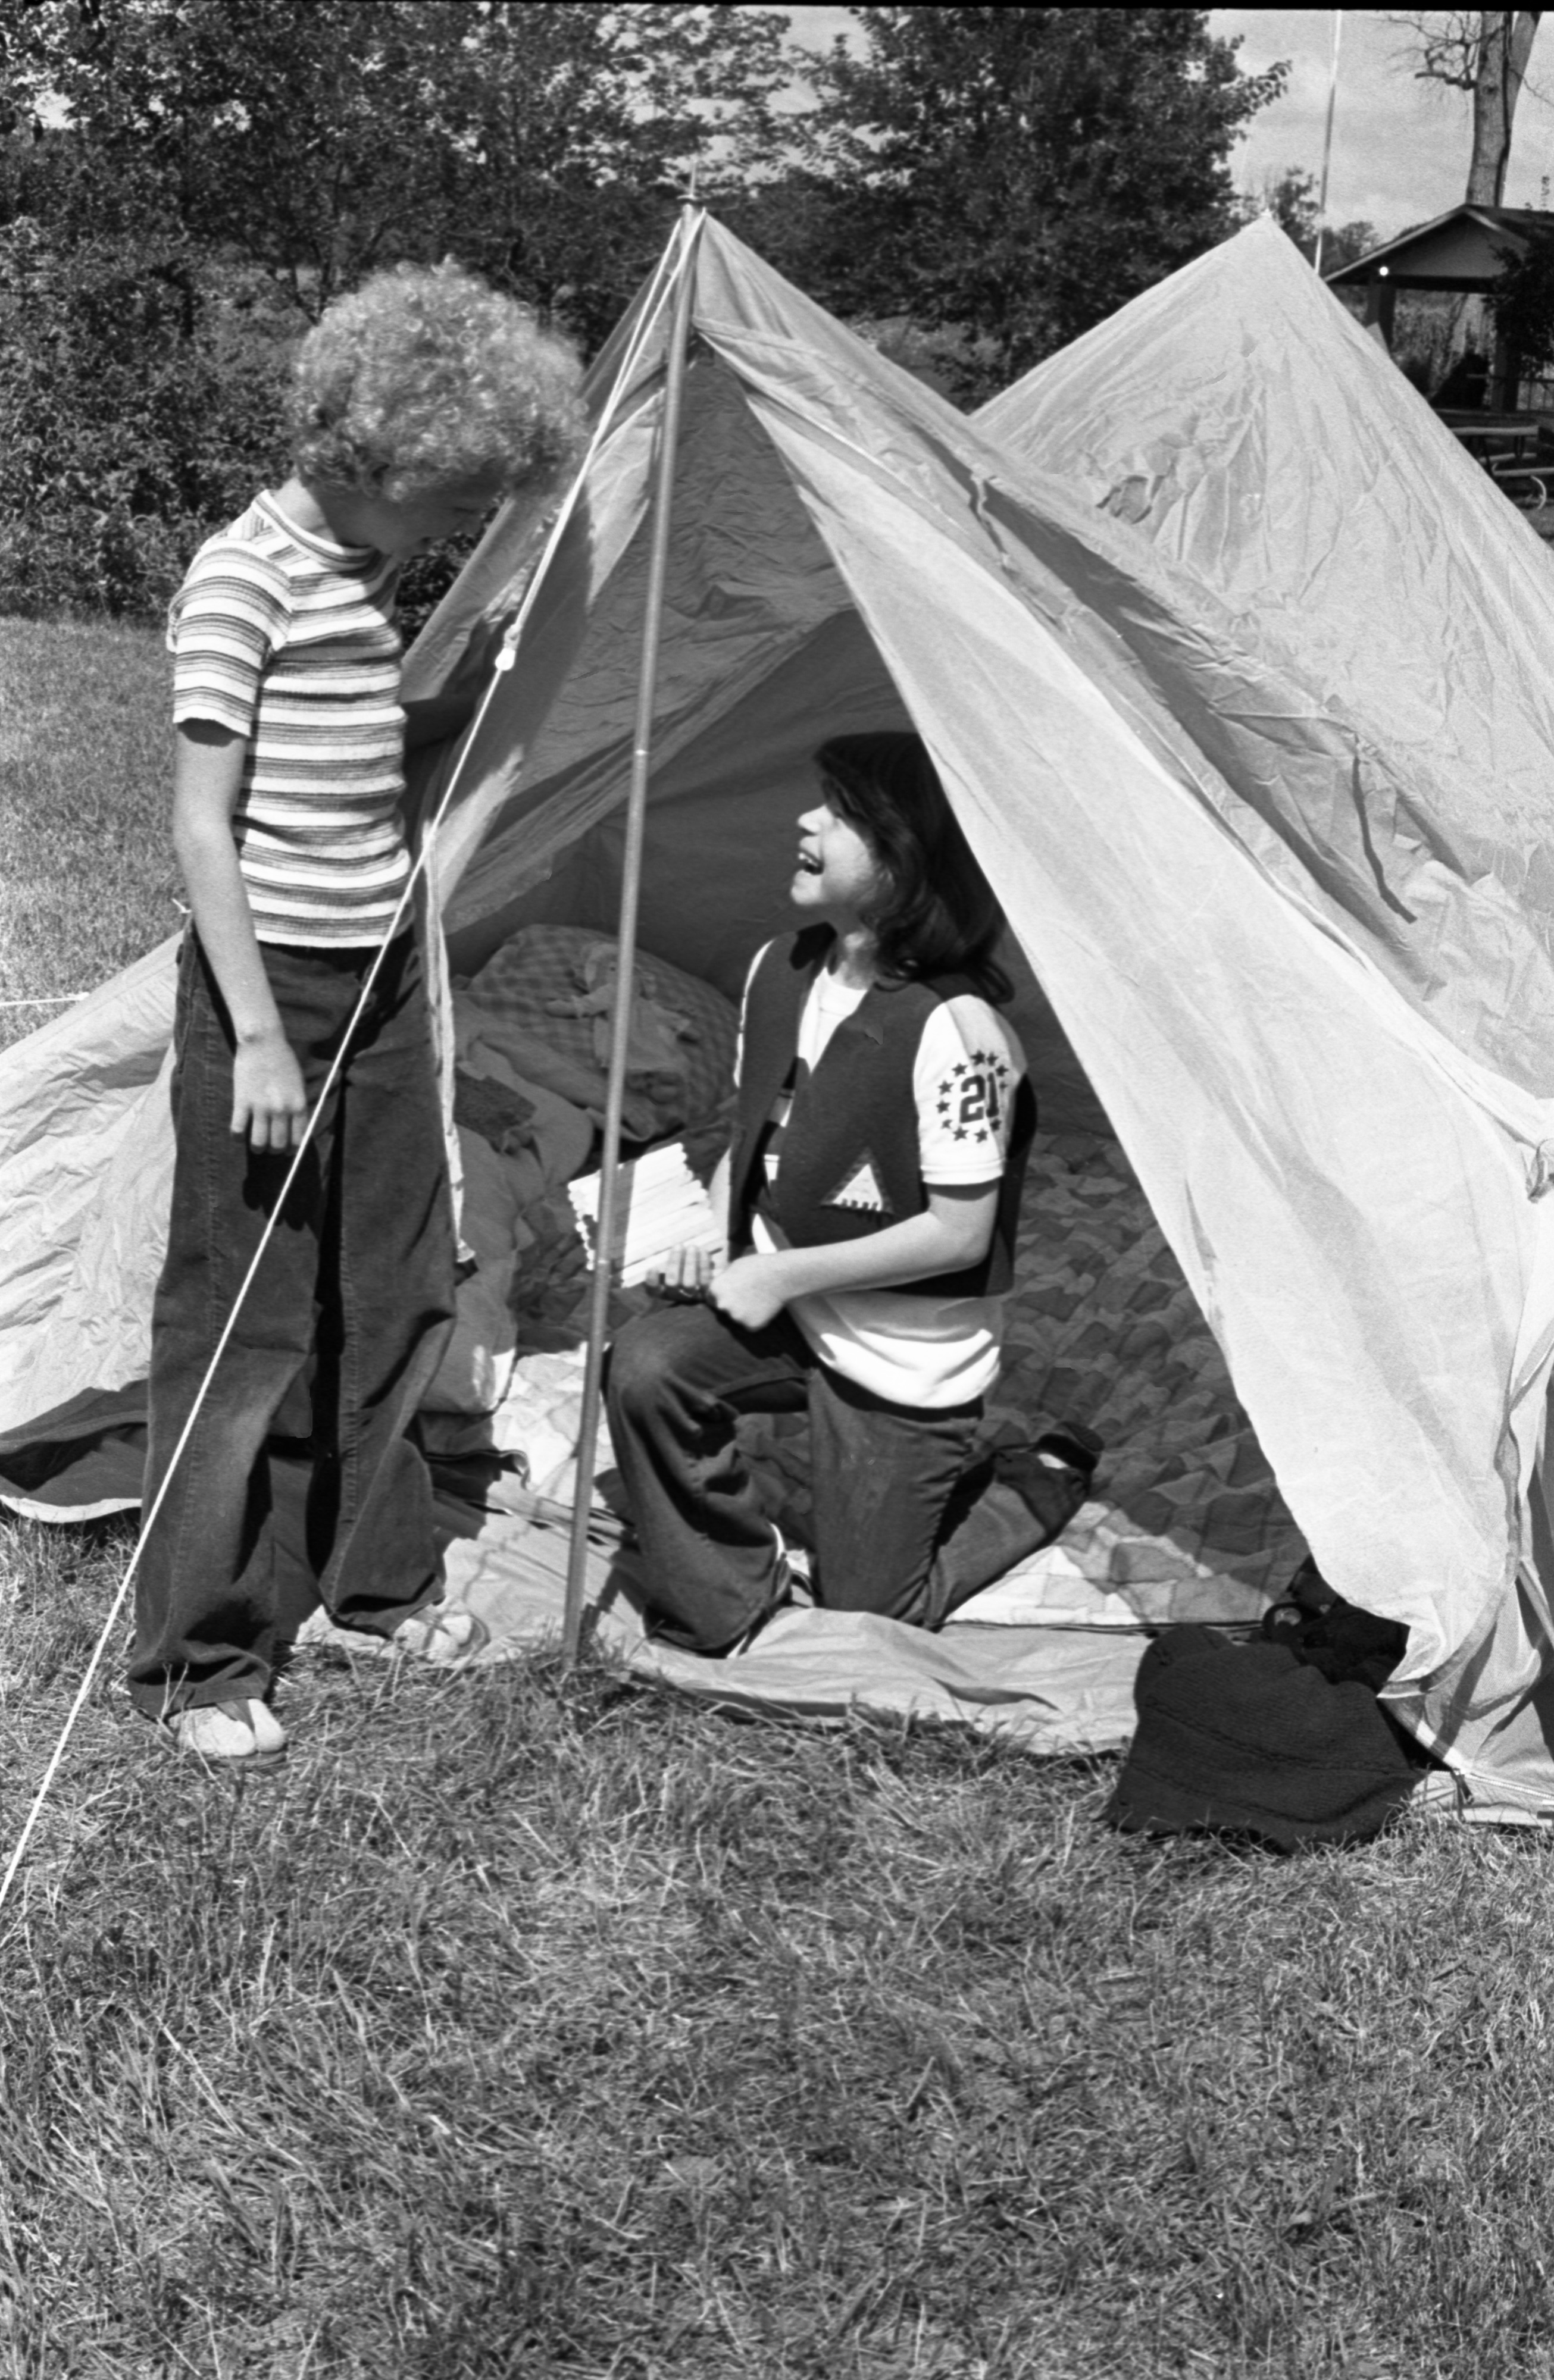 Camp Fire Girls Set Up Tents At Moose Campgrounds, August 1979 image